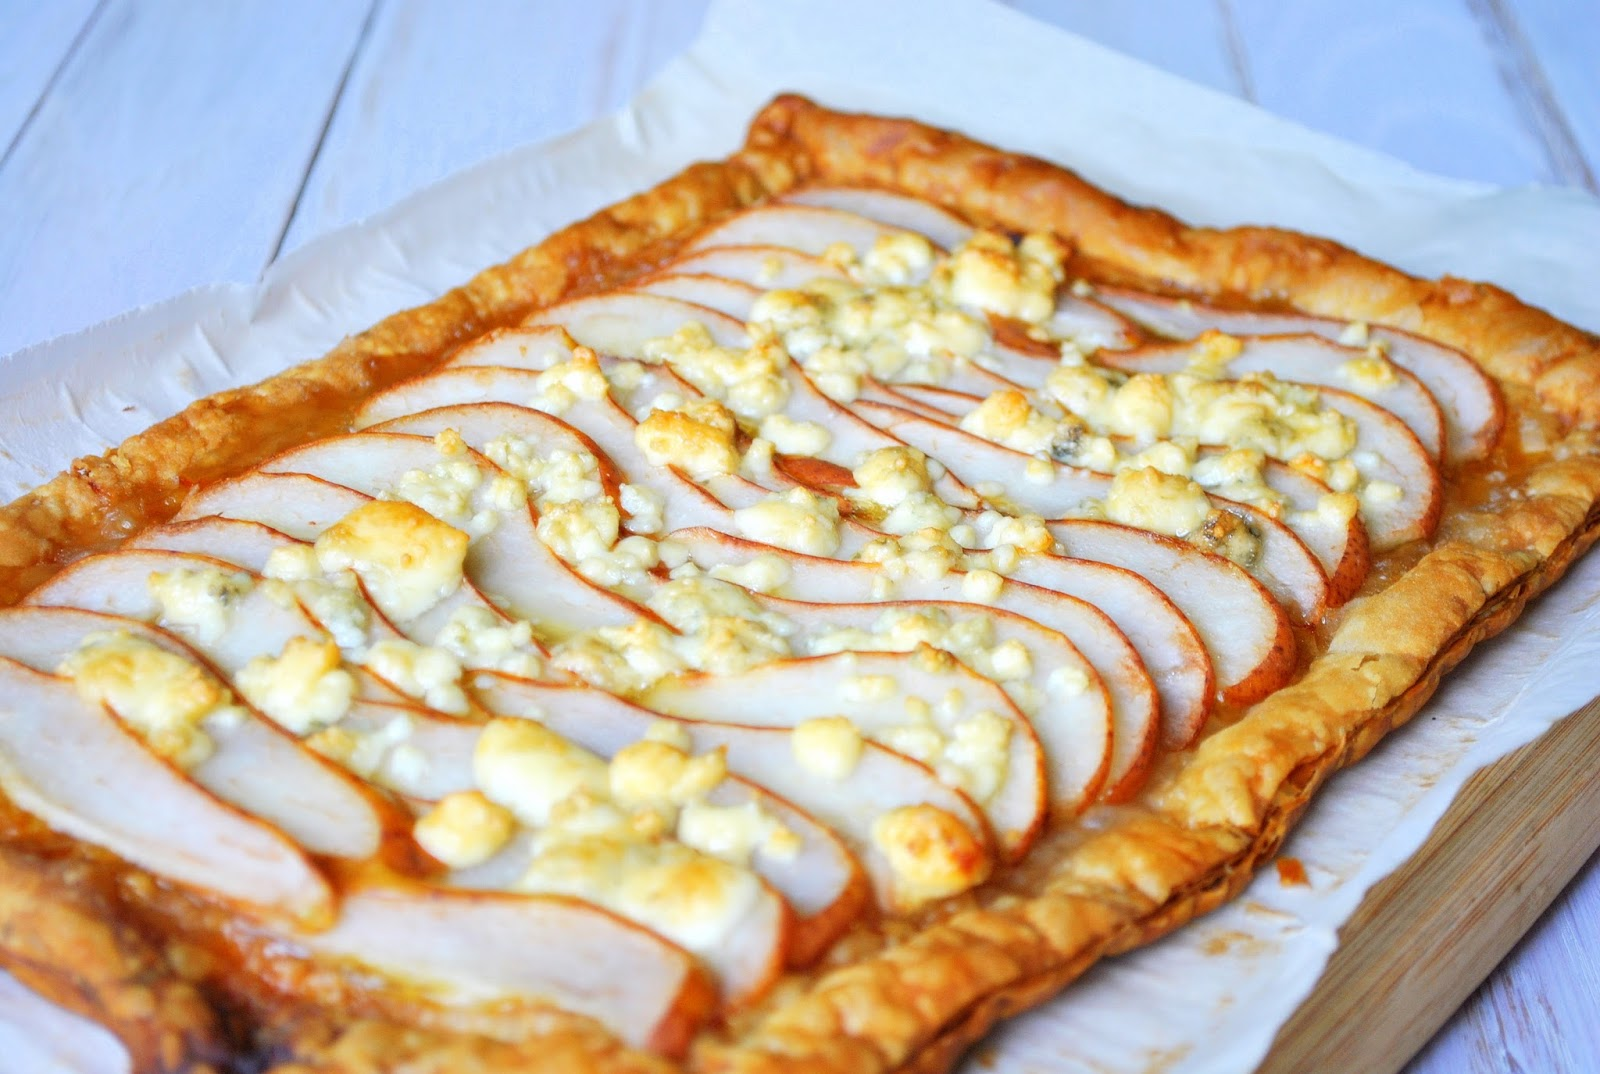 pear tart chocolate pear tart tart pear tart brie and pear tart pear ...